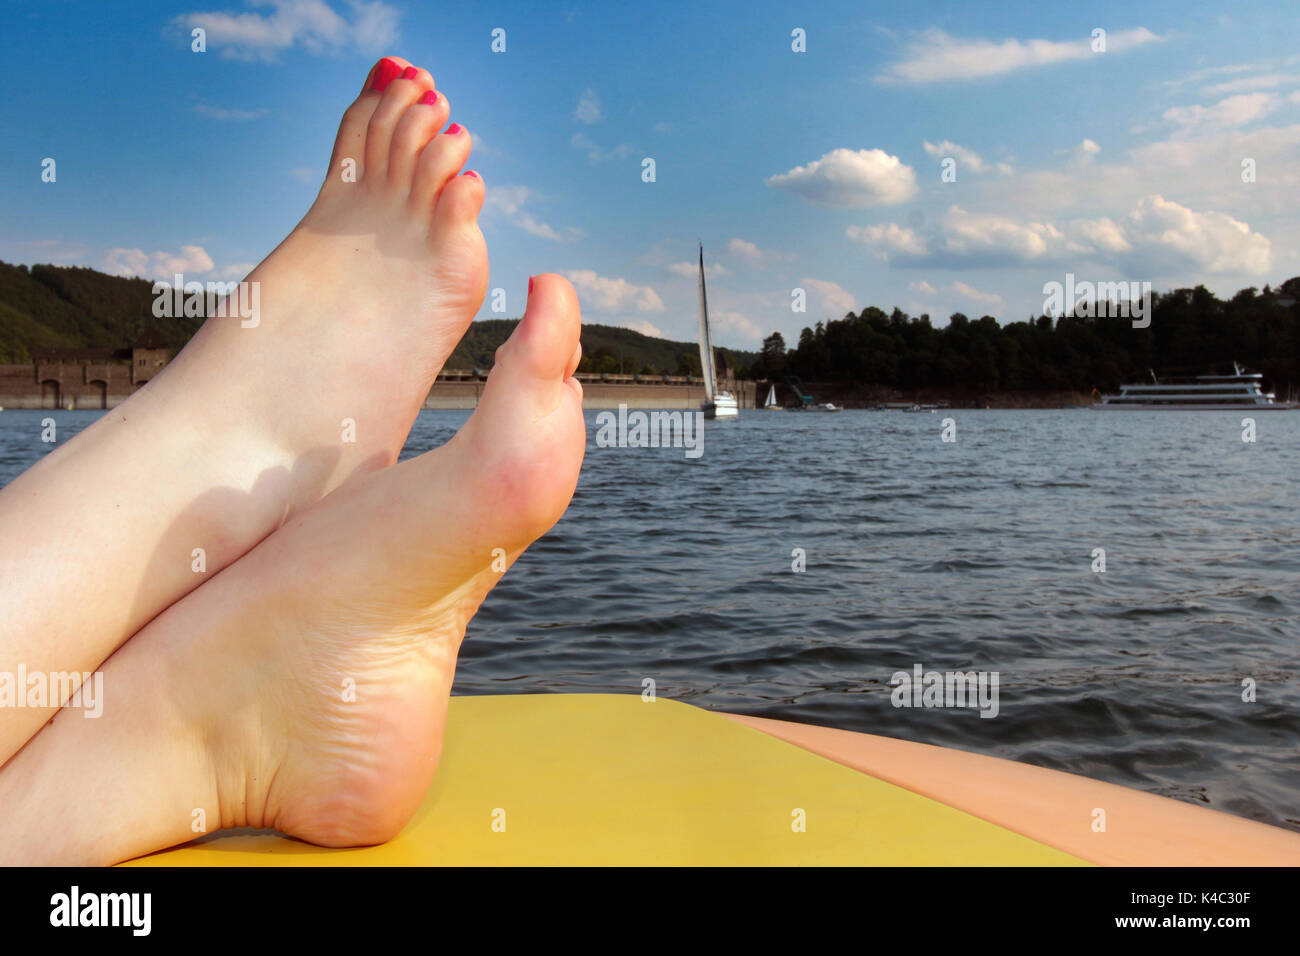 Les pieds nus Woman Relaxing On Edersee Photo Stock